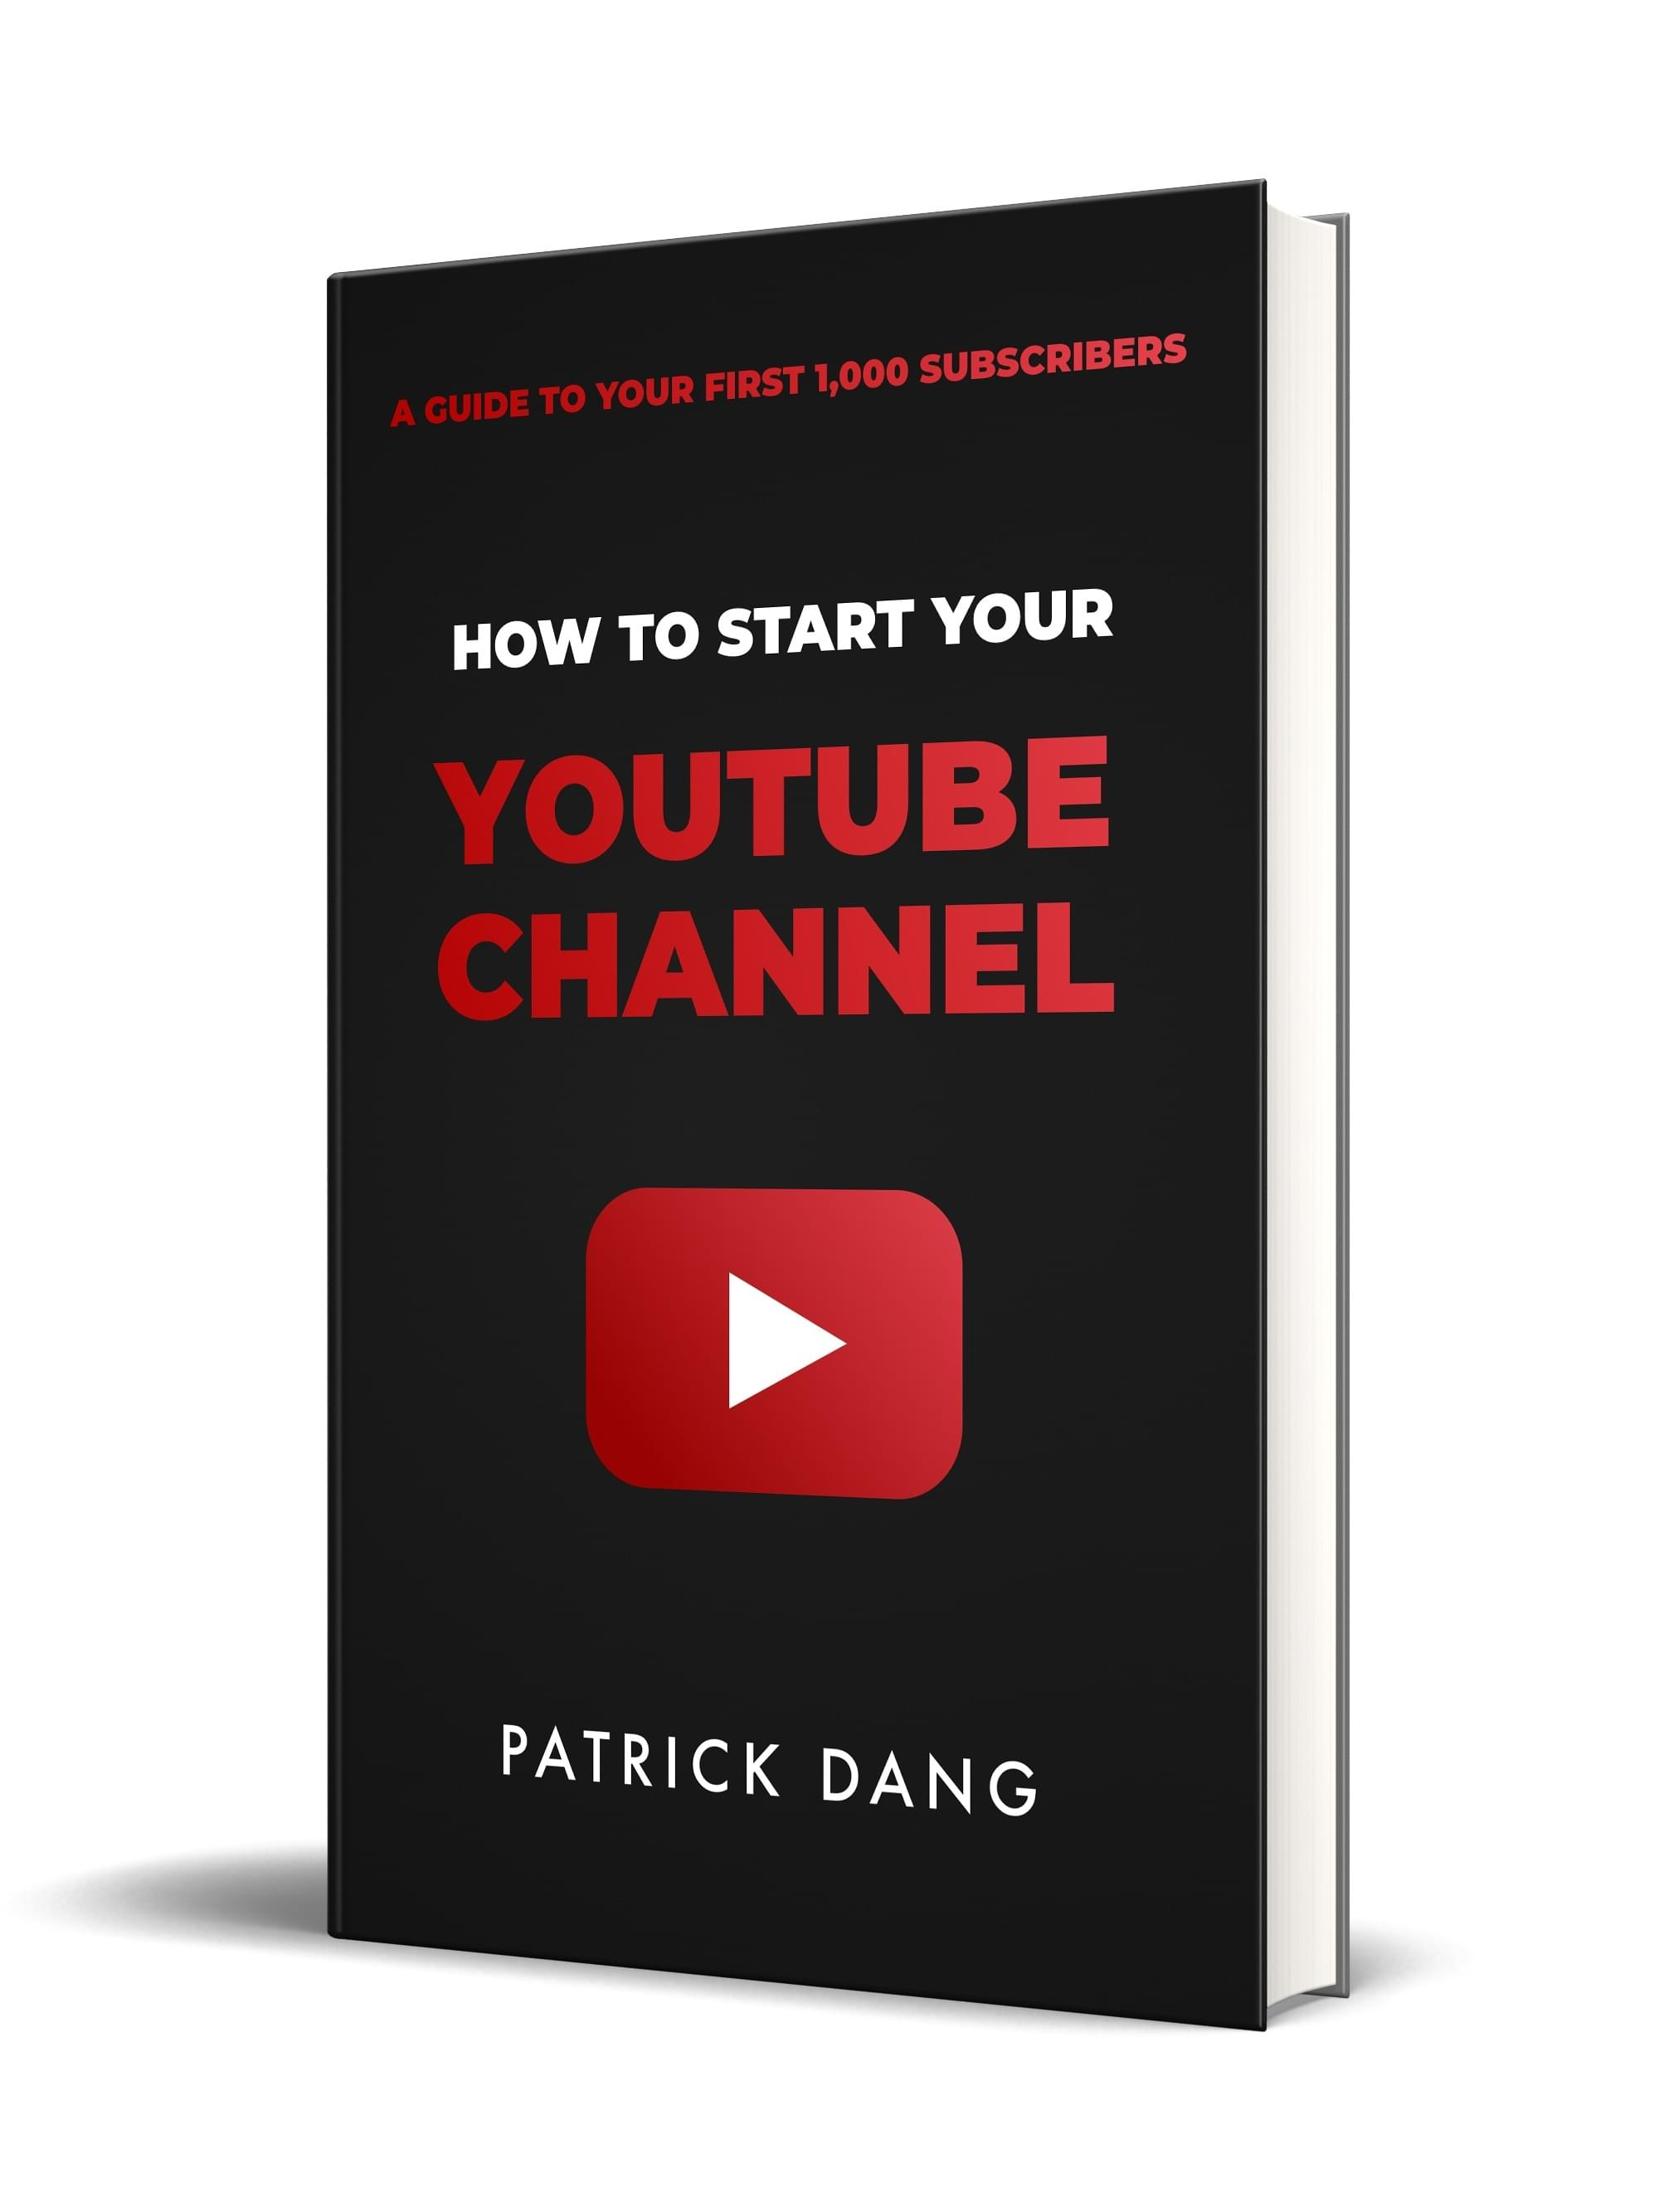 how to start your youtube channel patrick dang